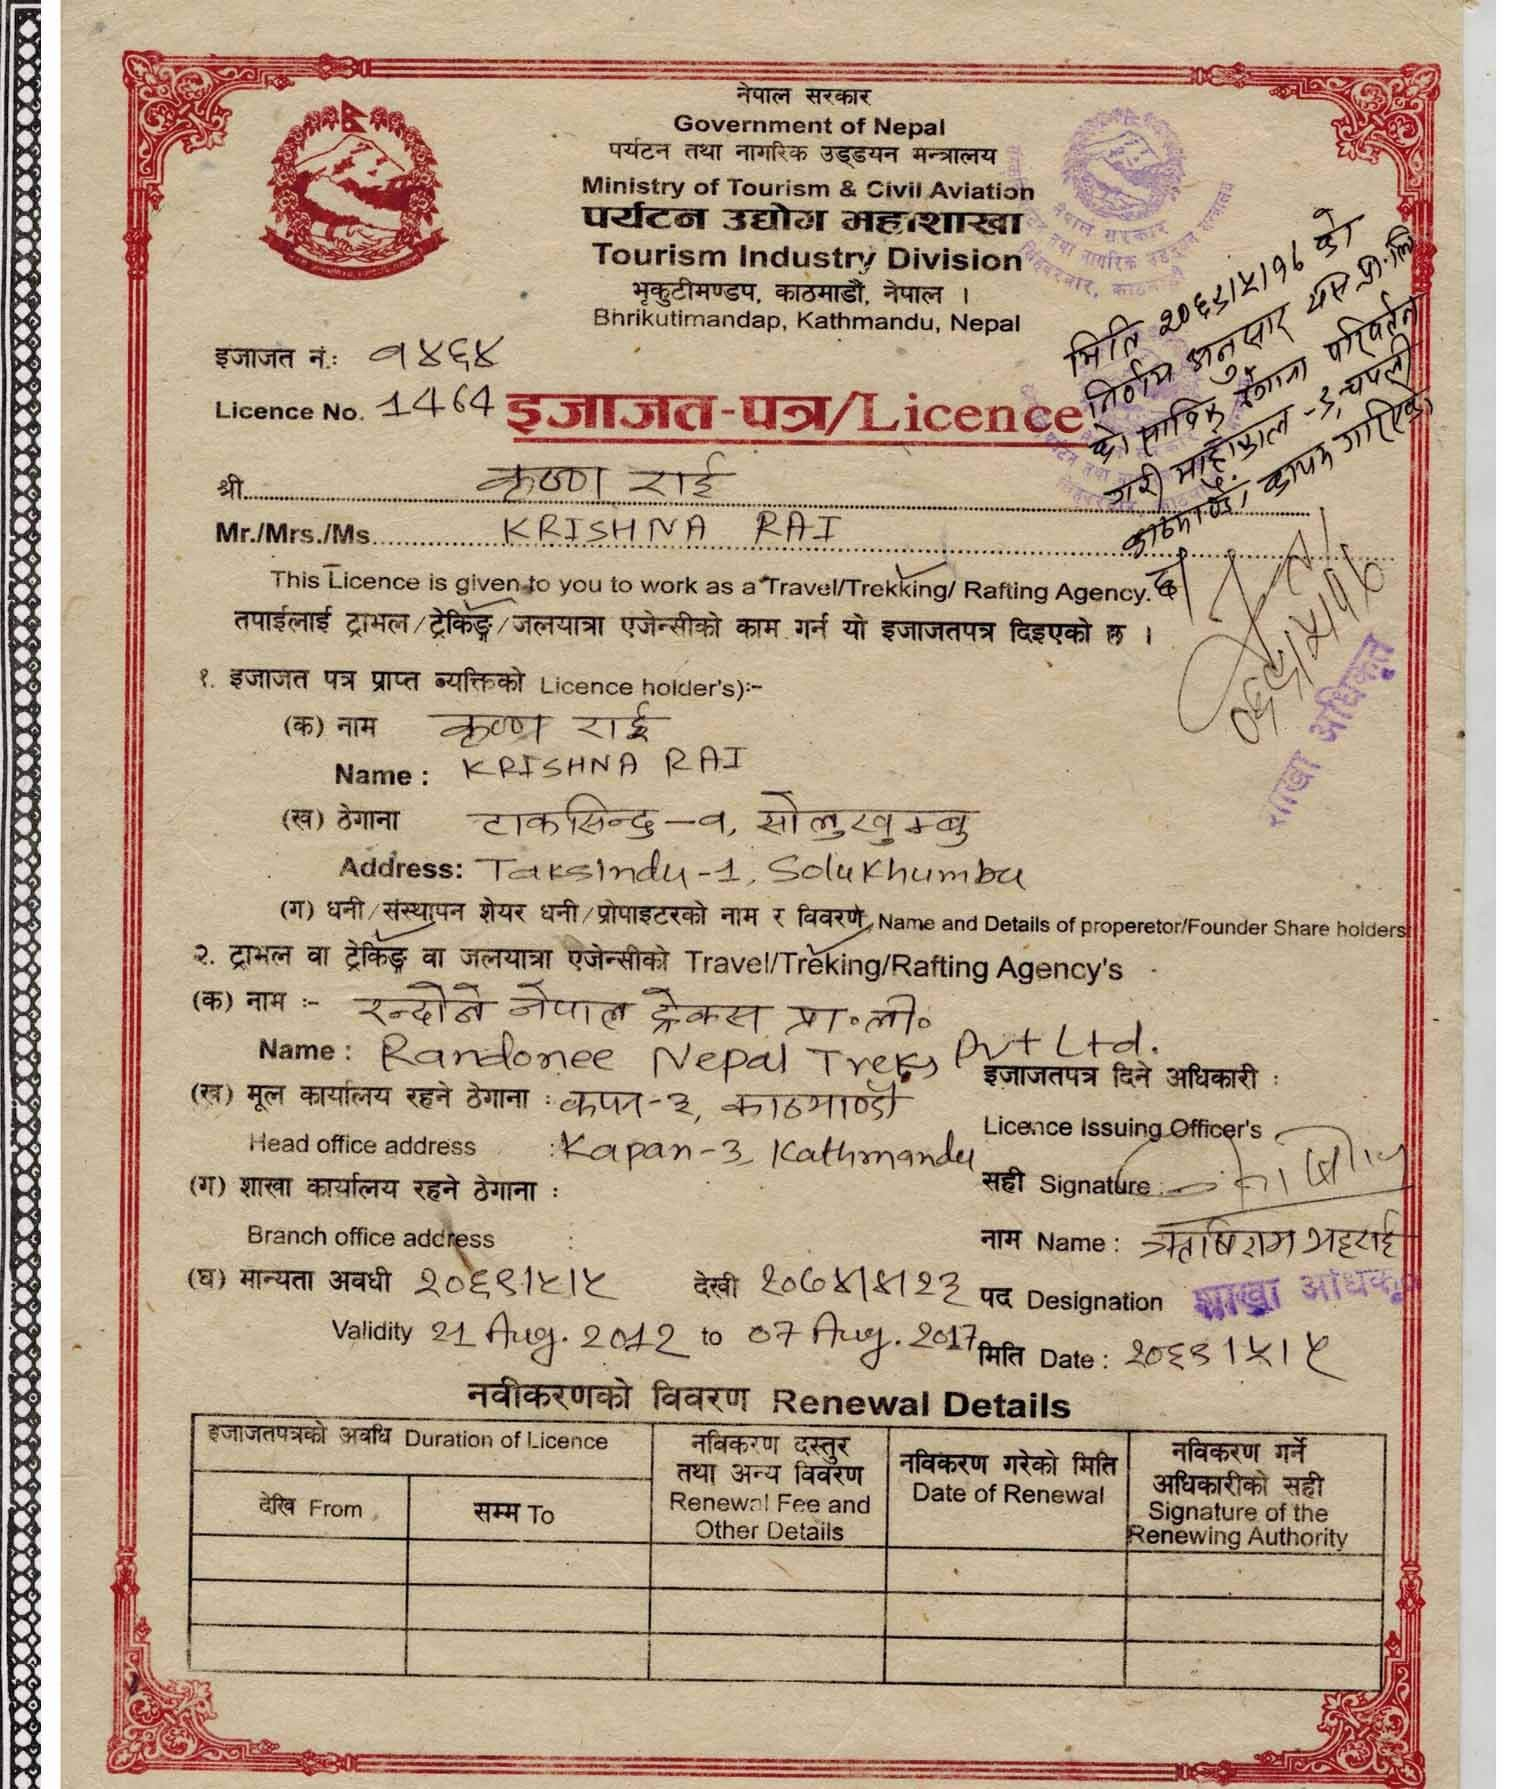 Certificate of Tourism Industry Division